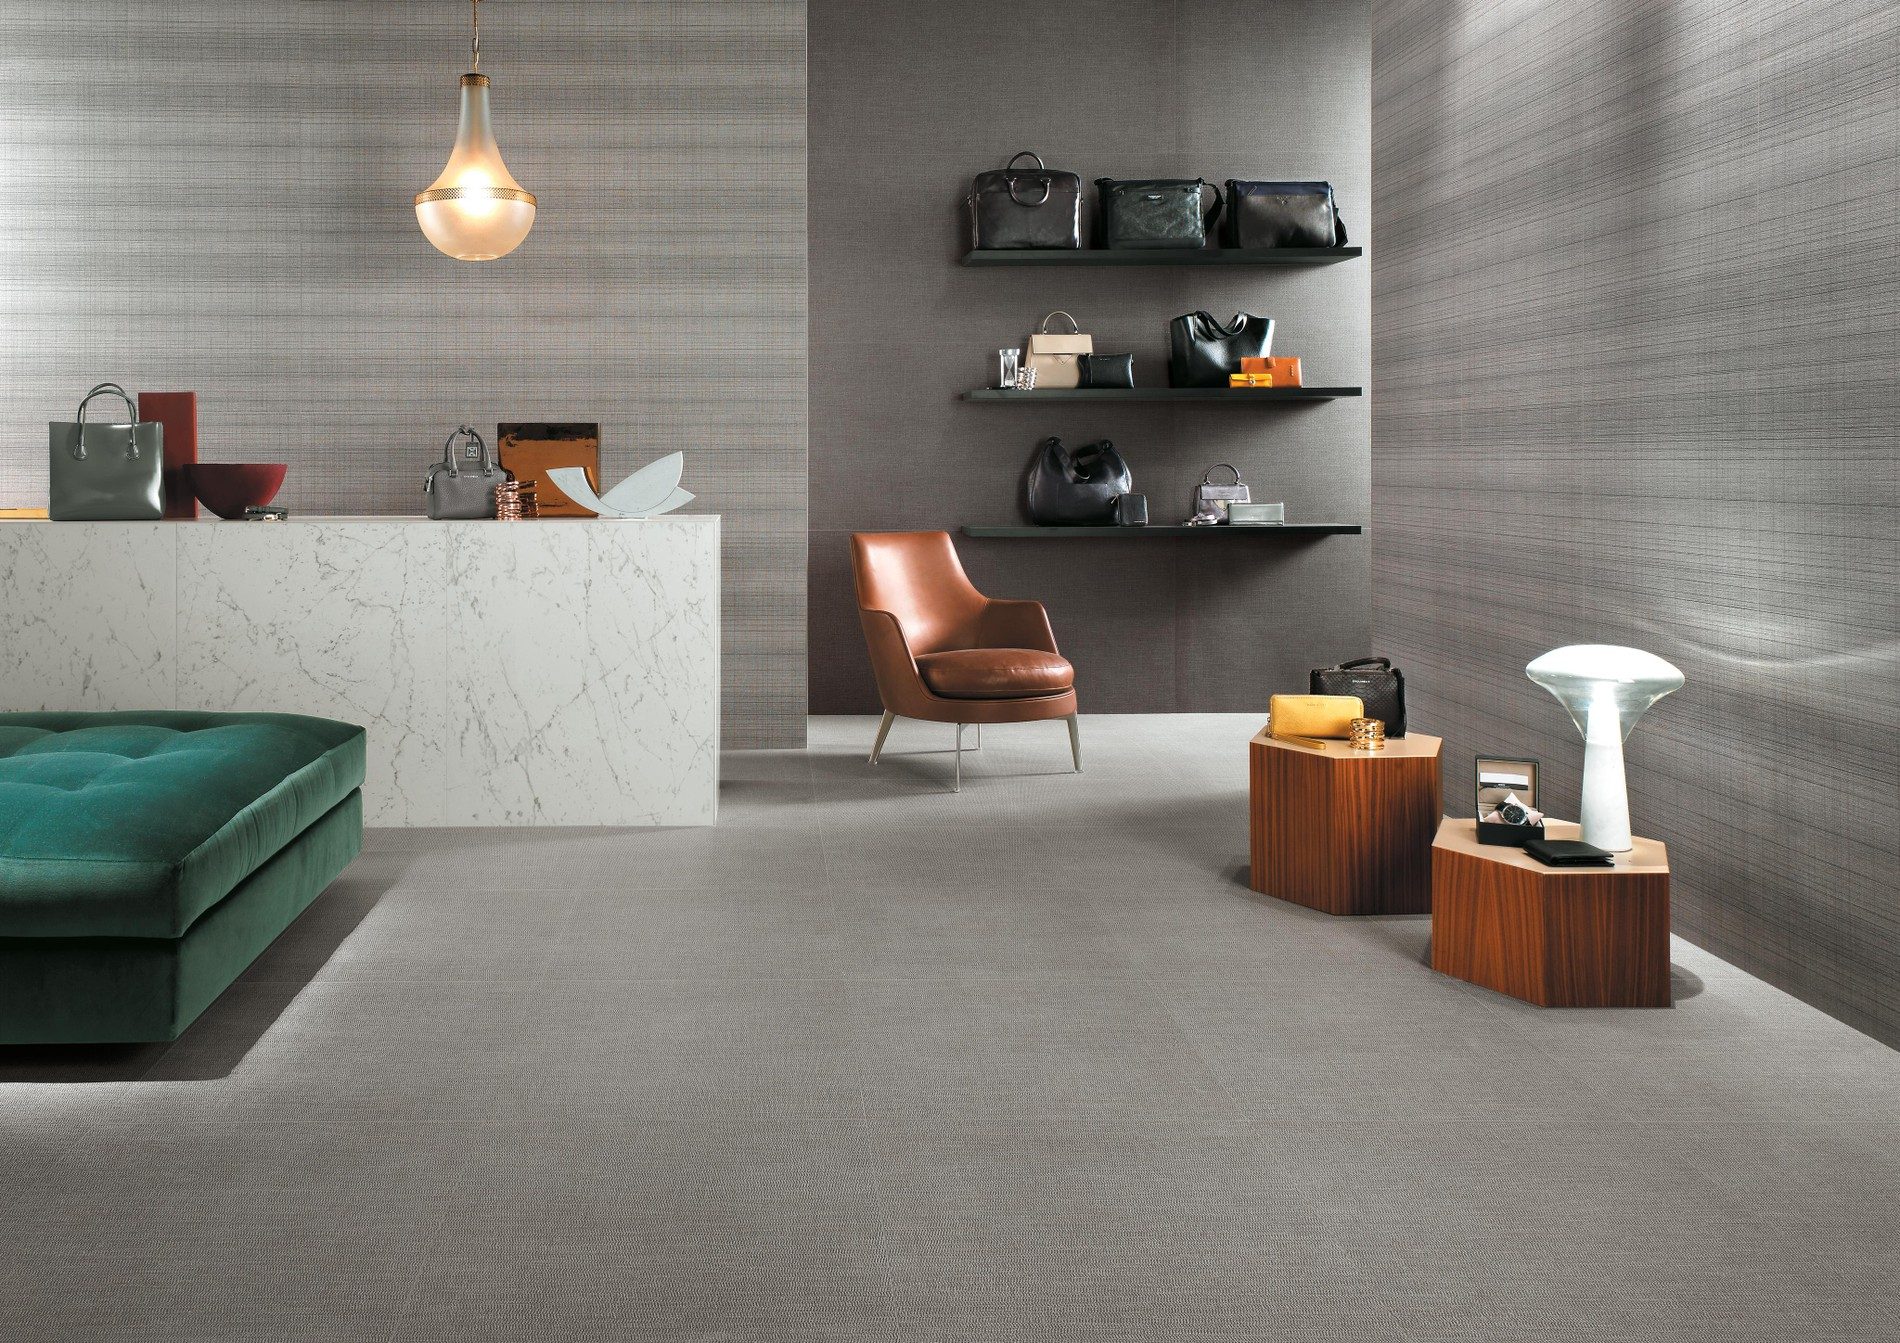 Sophisticated ceramic tile surfaces with refined patterns